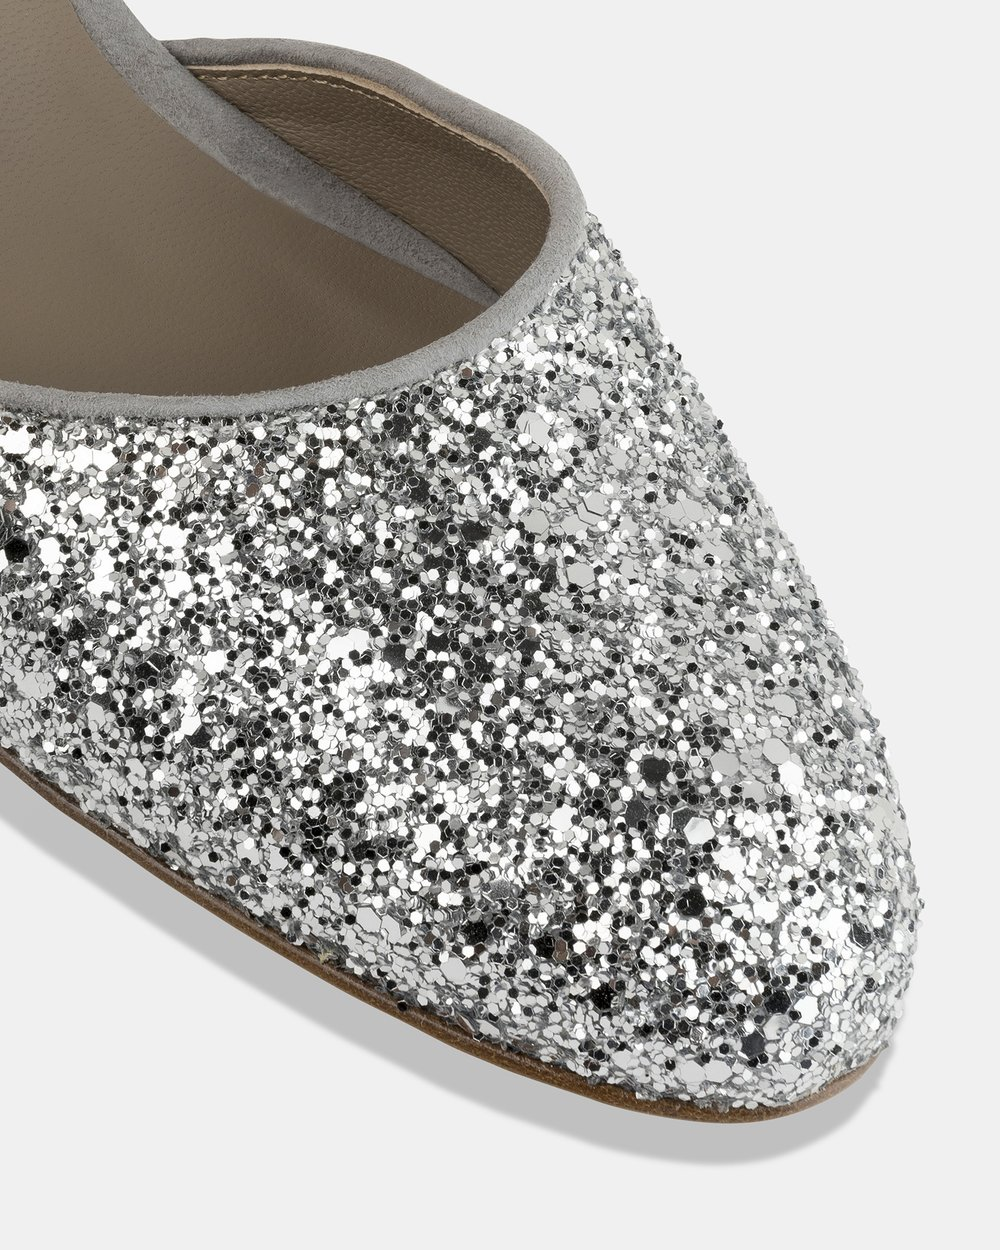 98b05df4f2a Dover Mid-heel Pumps by Habbot Online